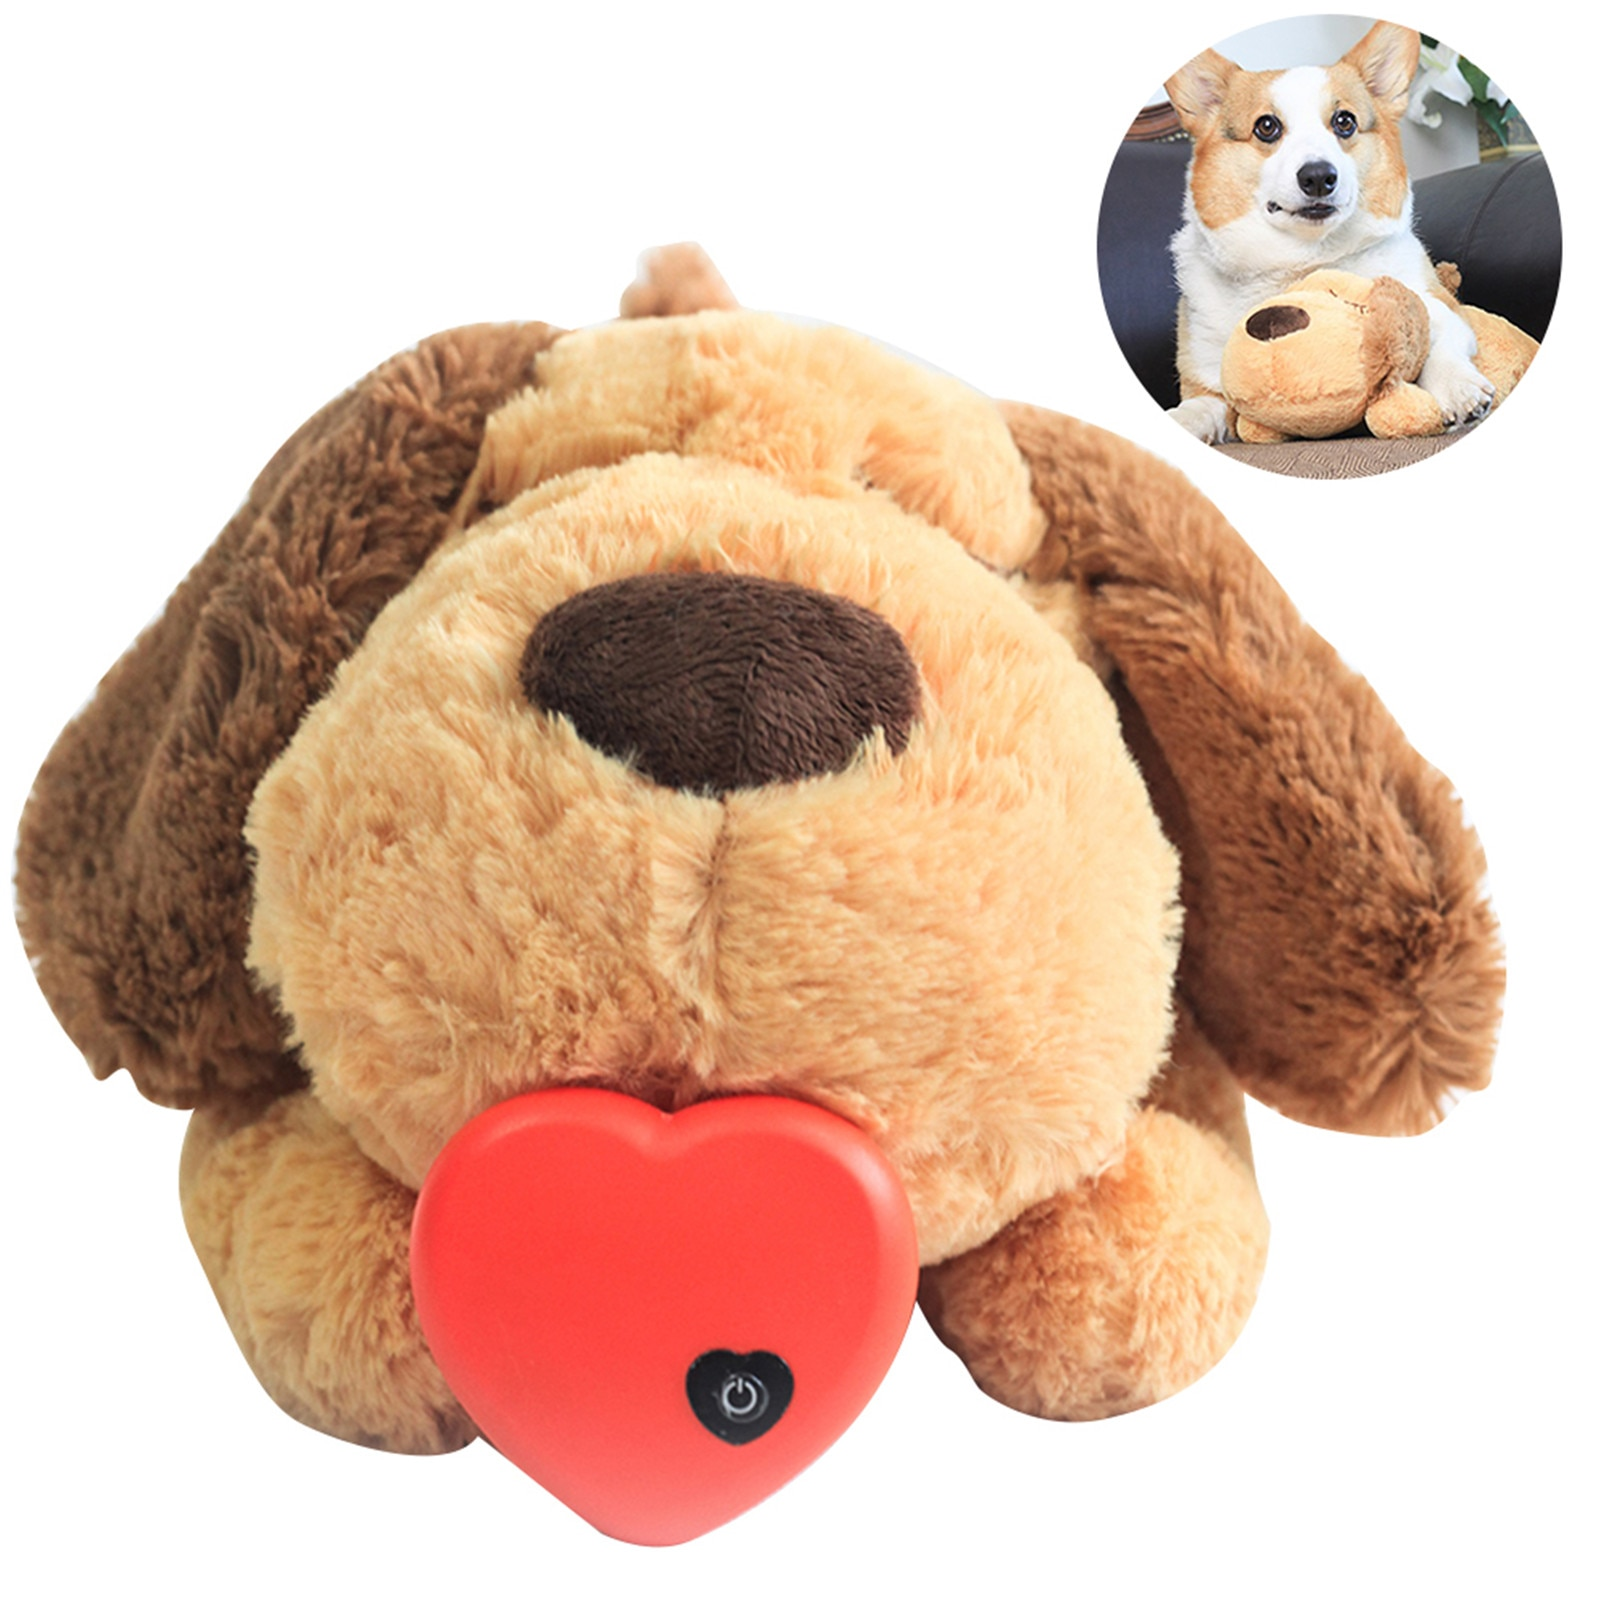 Plush Heartbeat Puppy Behavioral Training Toy Plush Pet Snuggle Anxiety Relief Sleep Aid Doll Durable Dog Chew Toys For Chewers